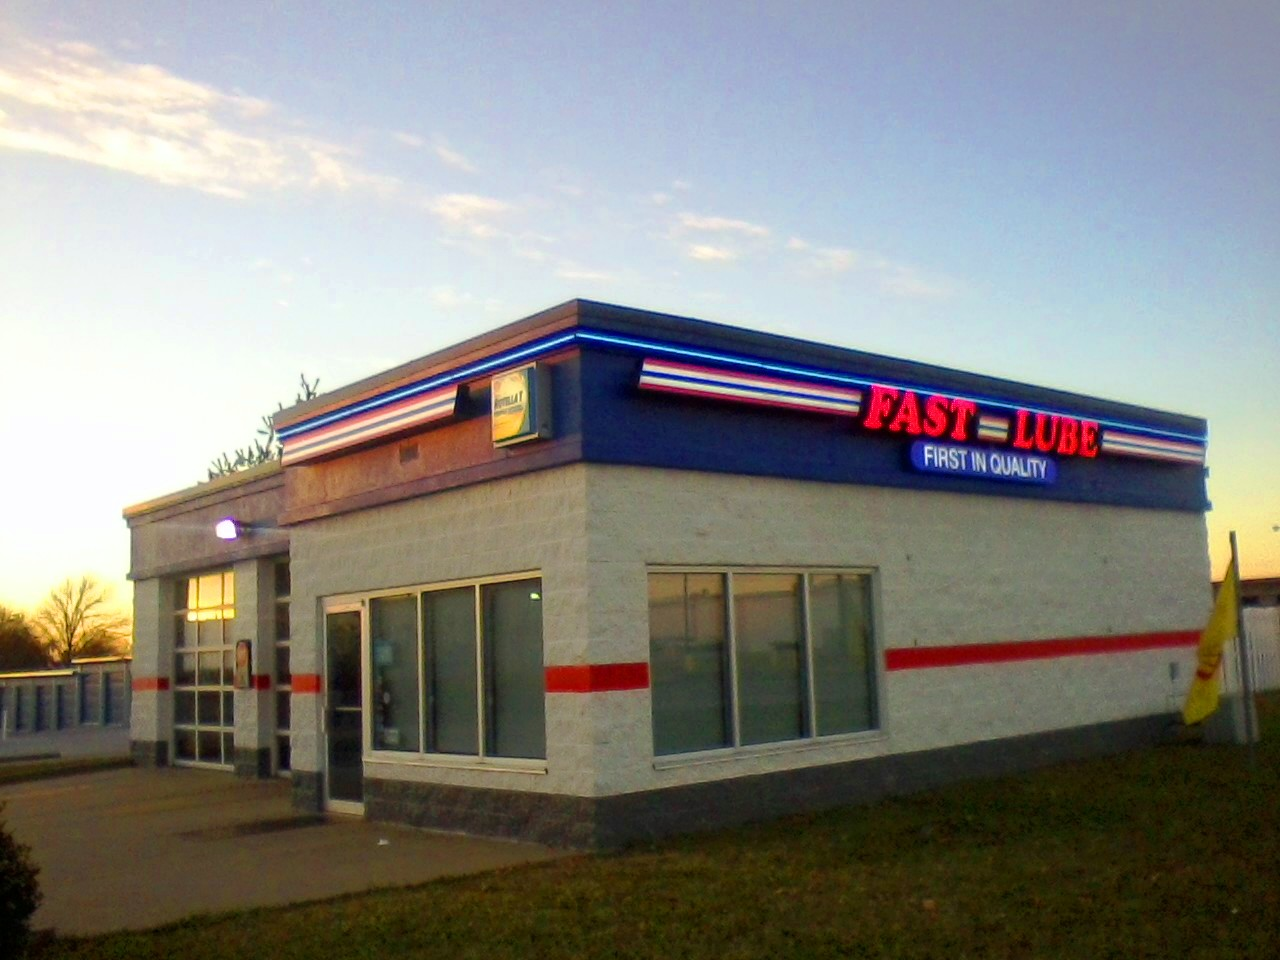 Charlie's Fast Lube Oil Change - Sparta, IL image 0